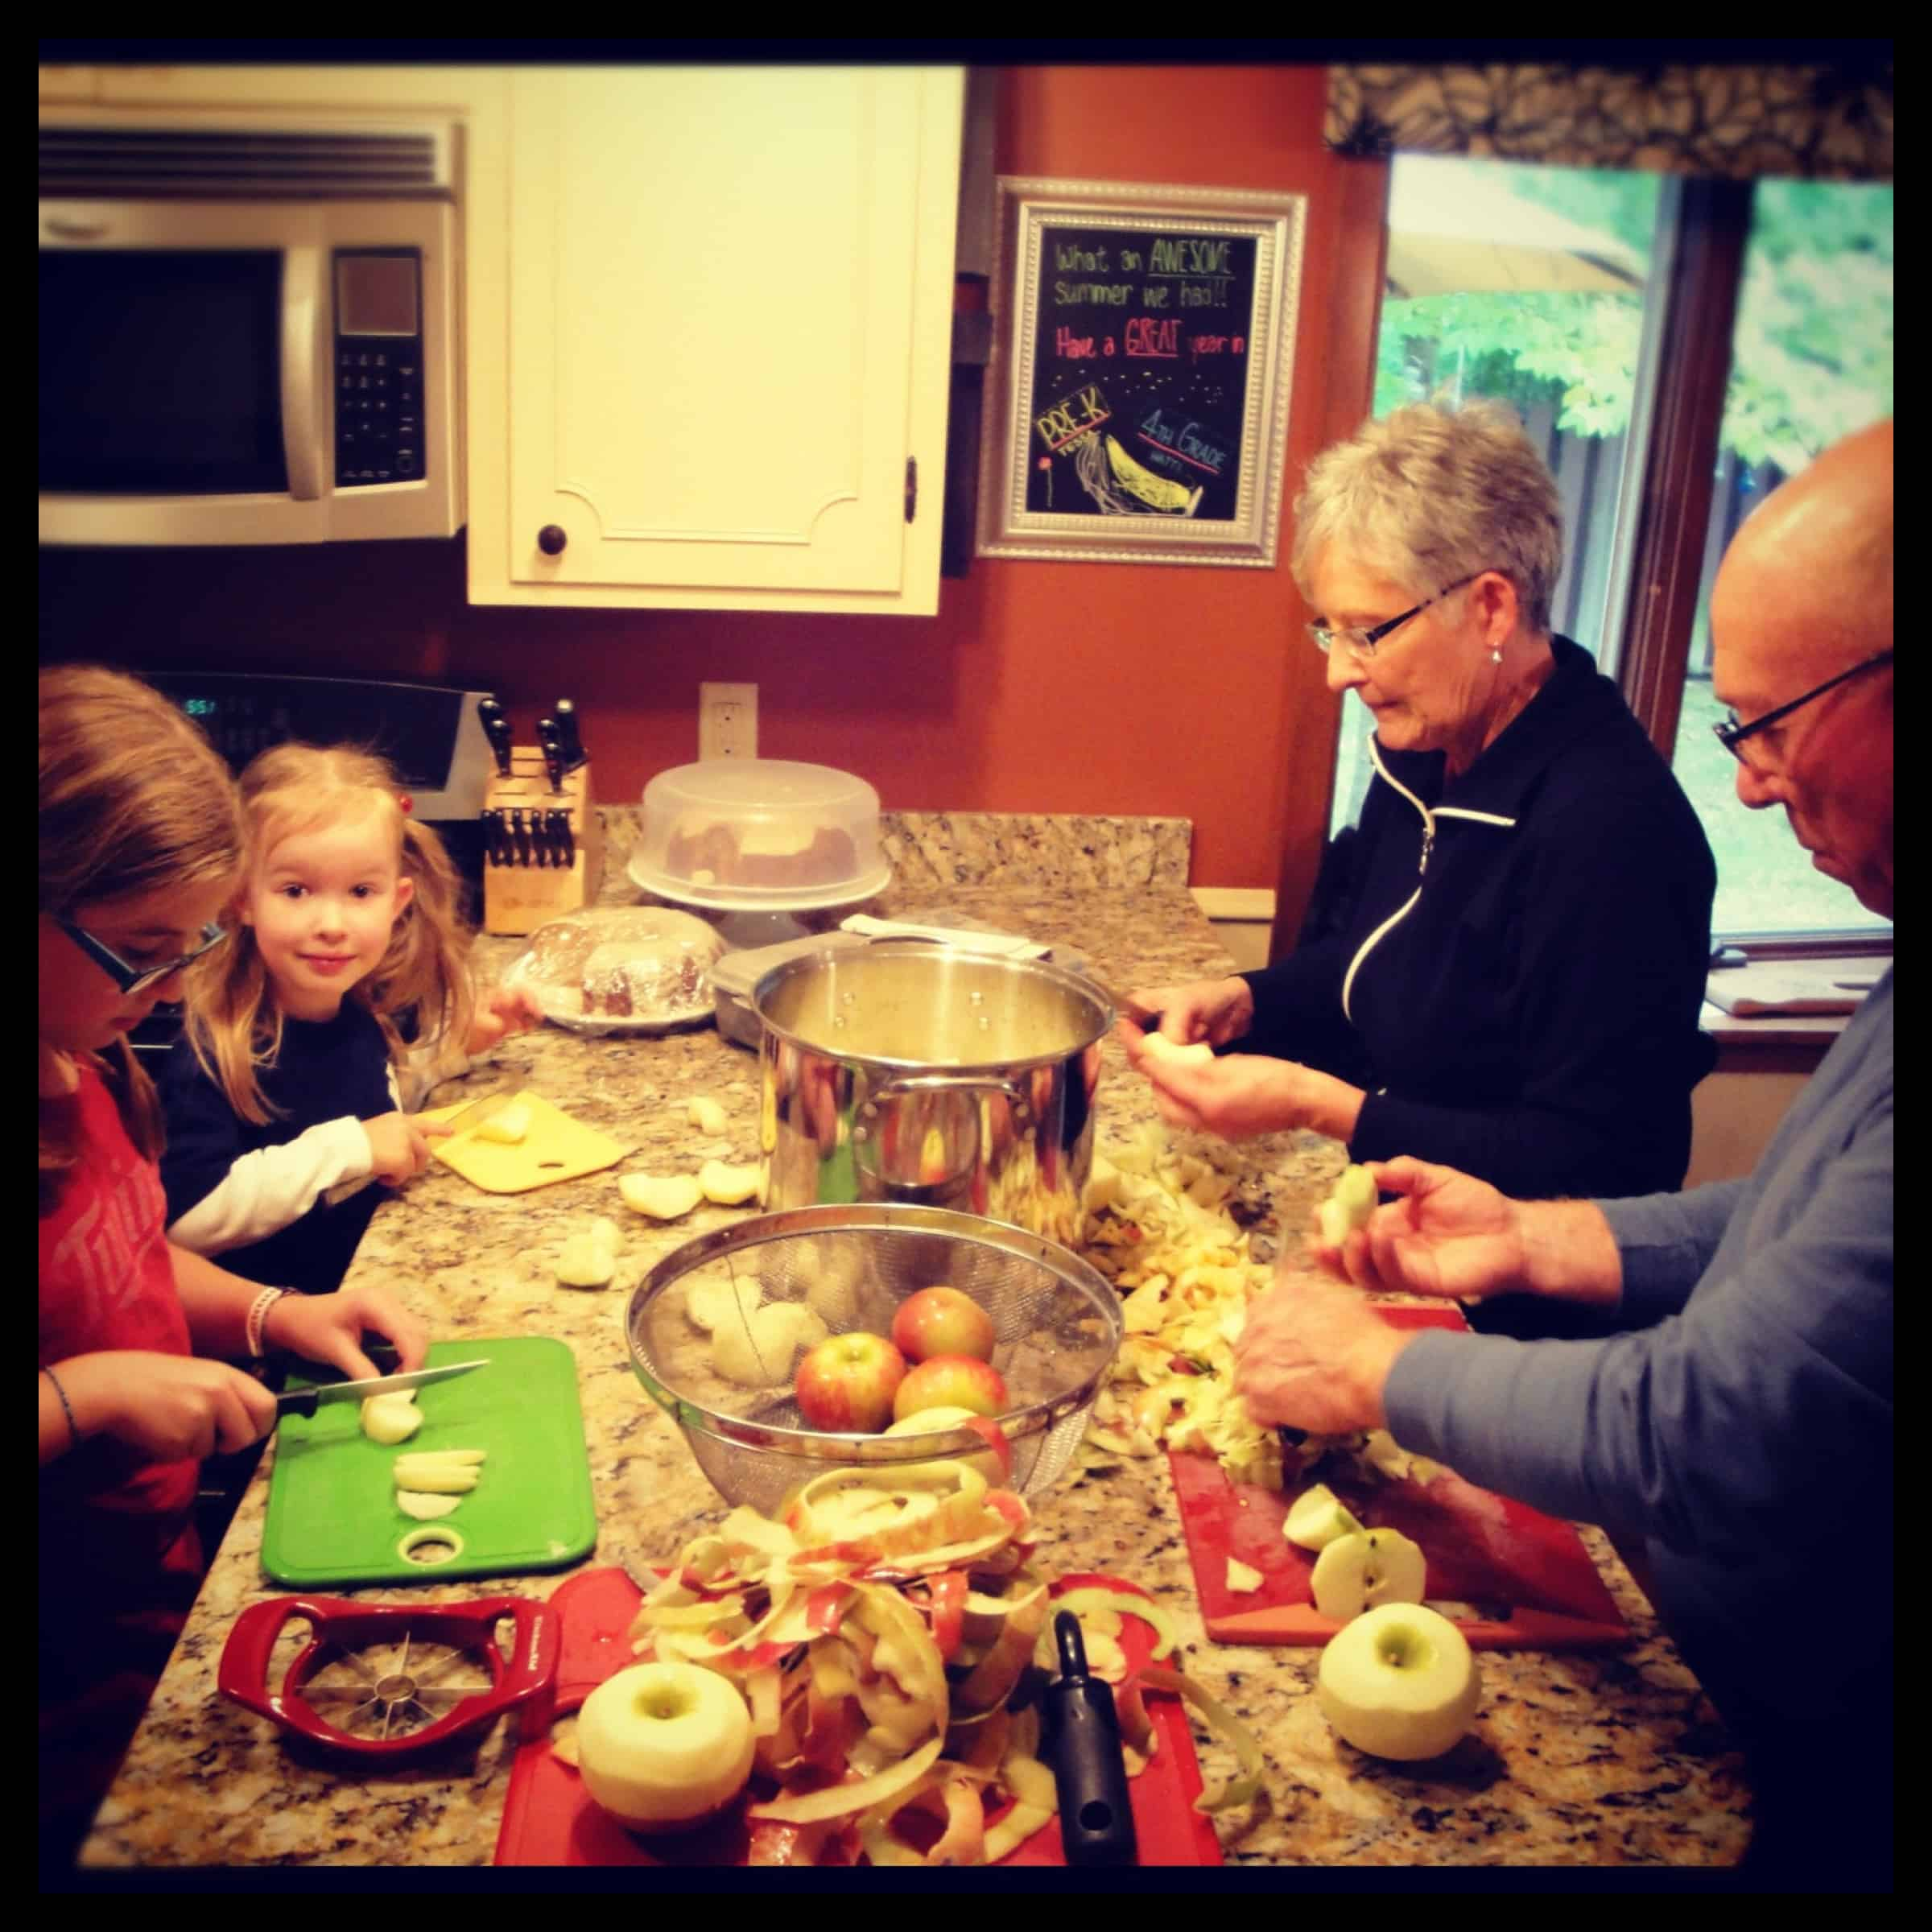 family making applesauce together in kitchen